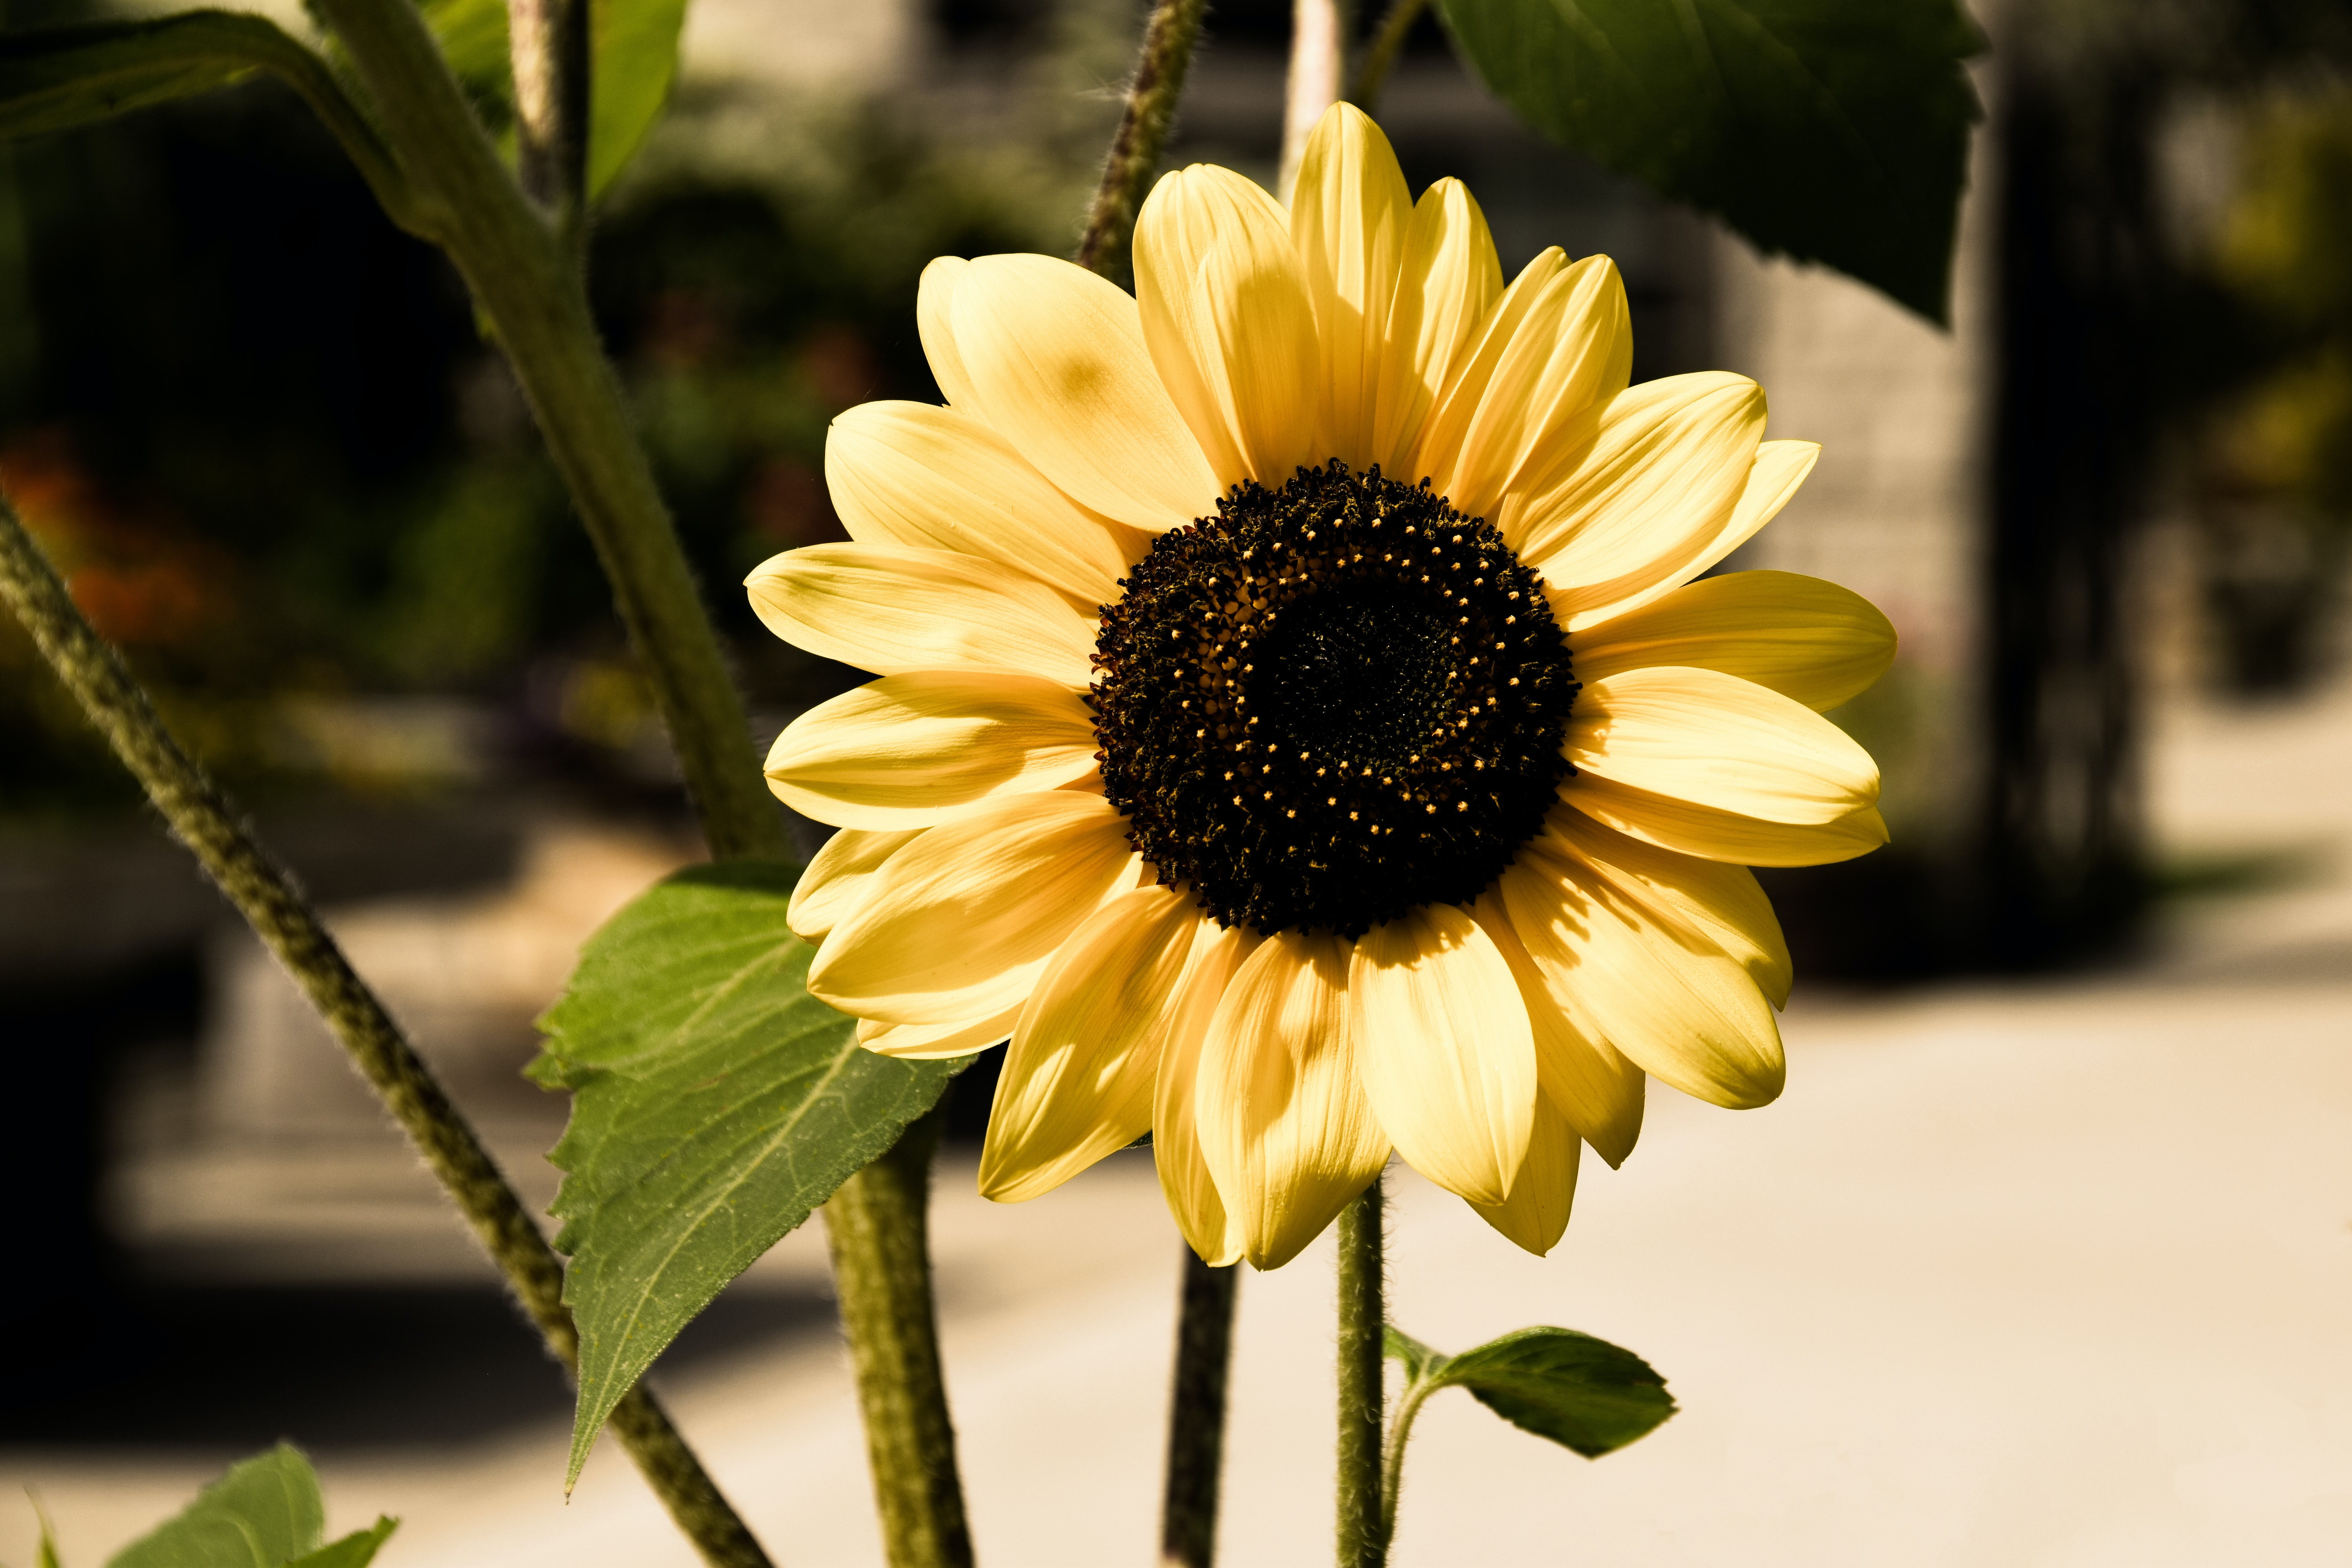 sunflower in shallow focus photography